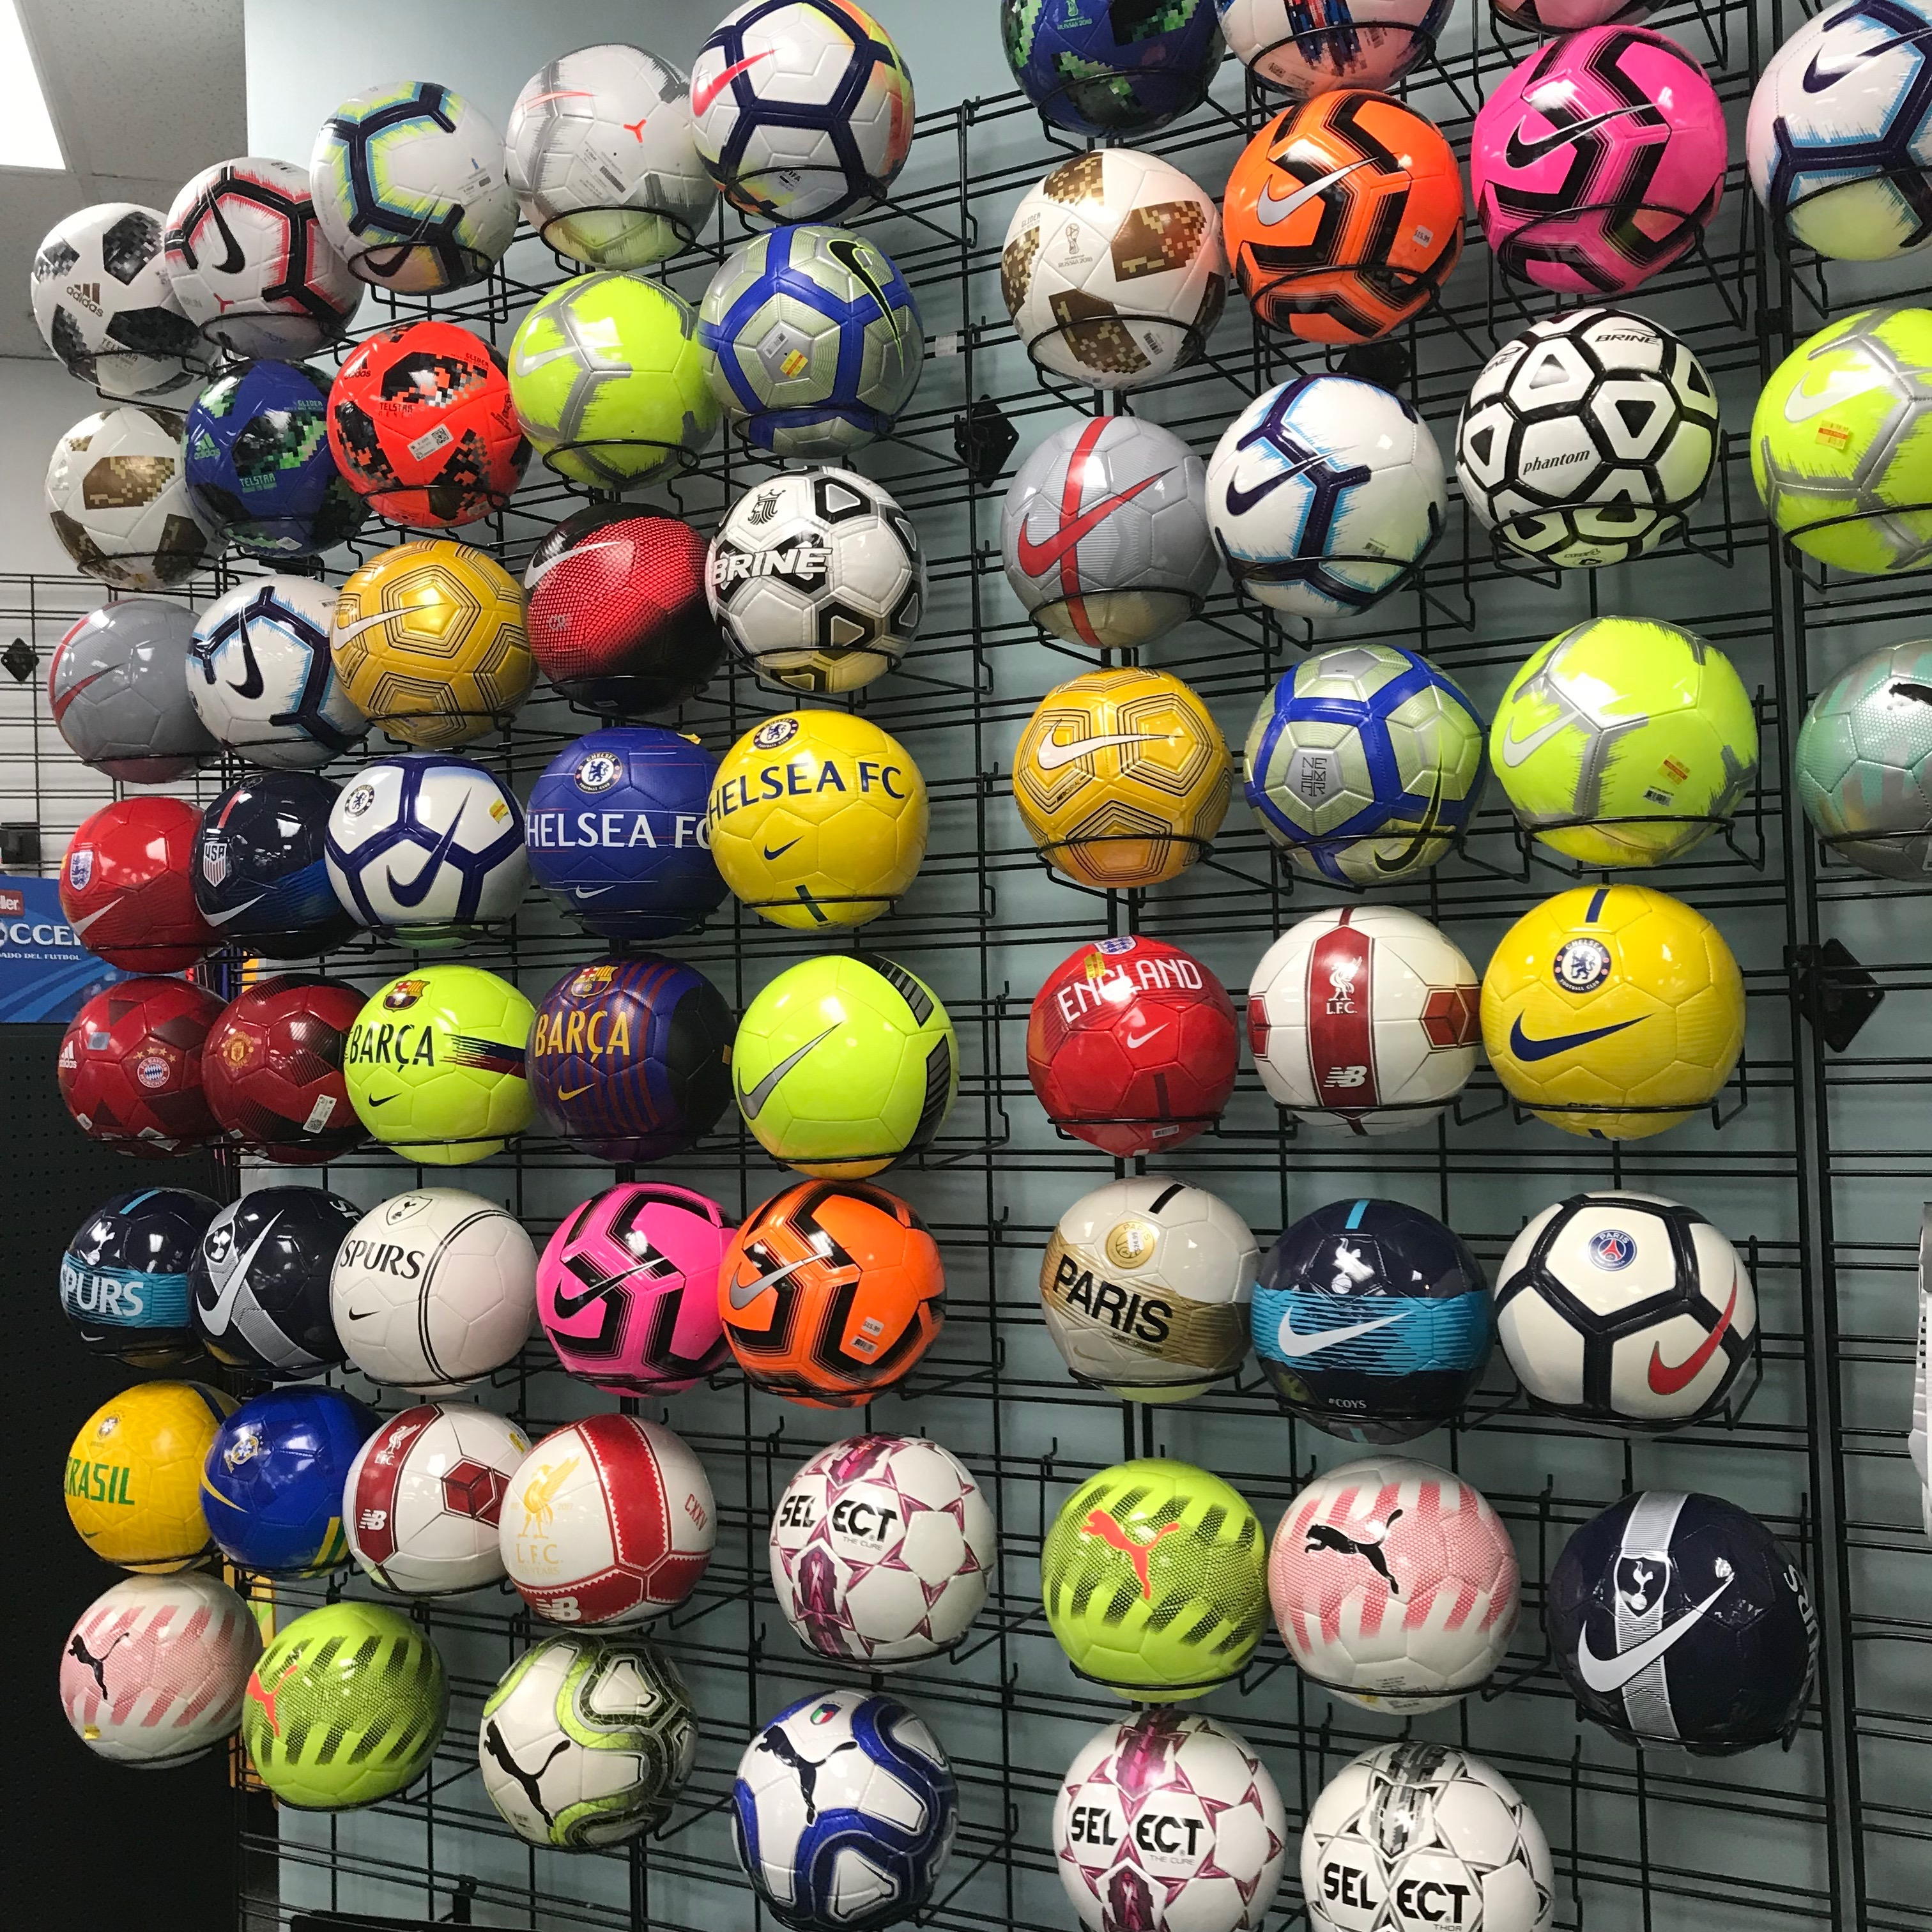 lowest price 431a8 d824d Soccer Master Store Locations - Manchester, MO ...